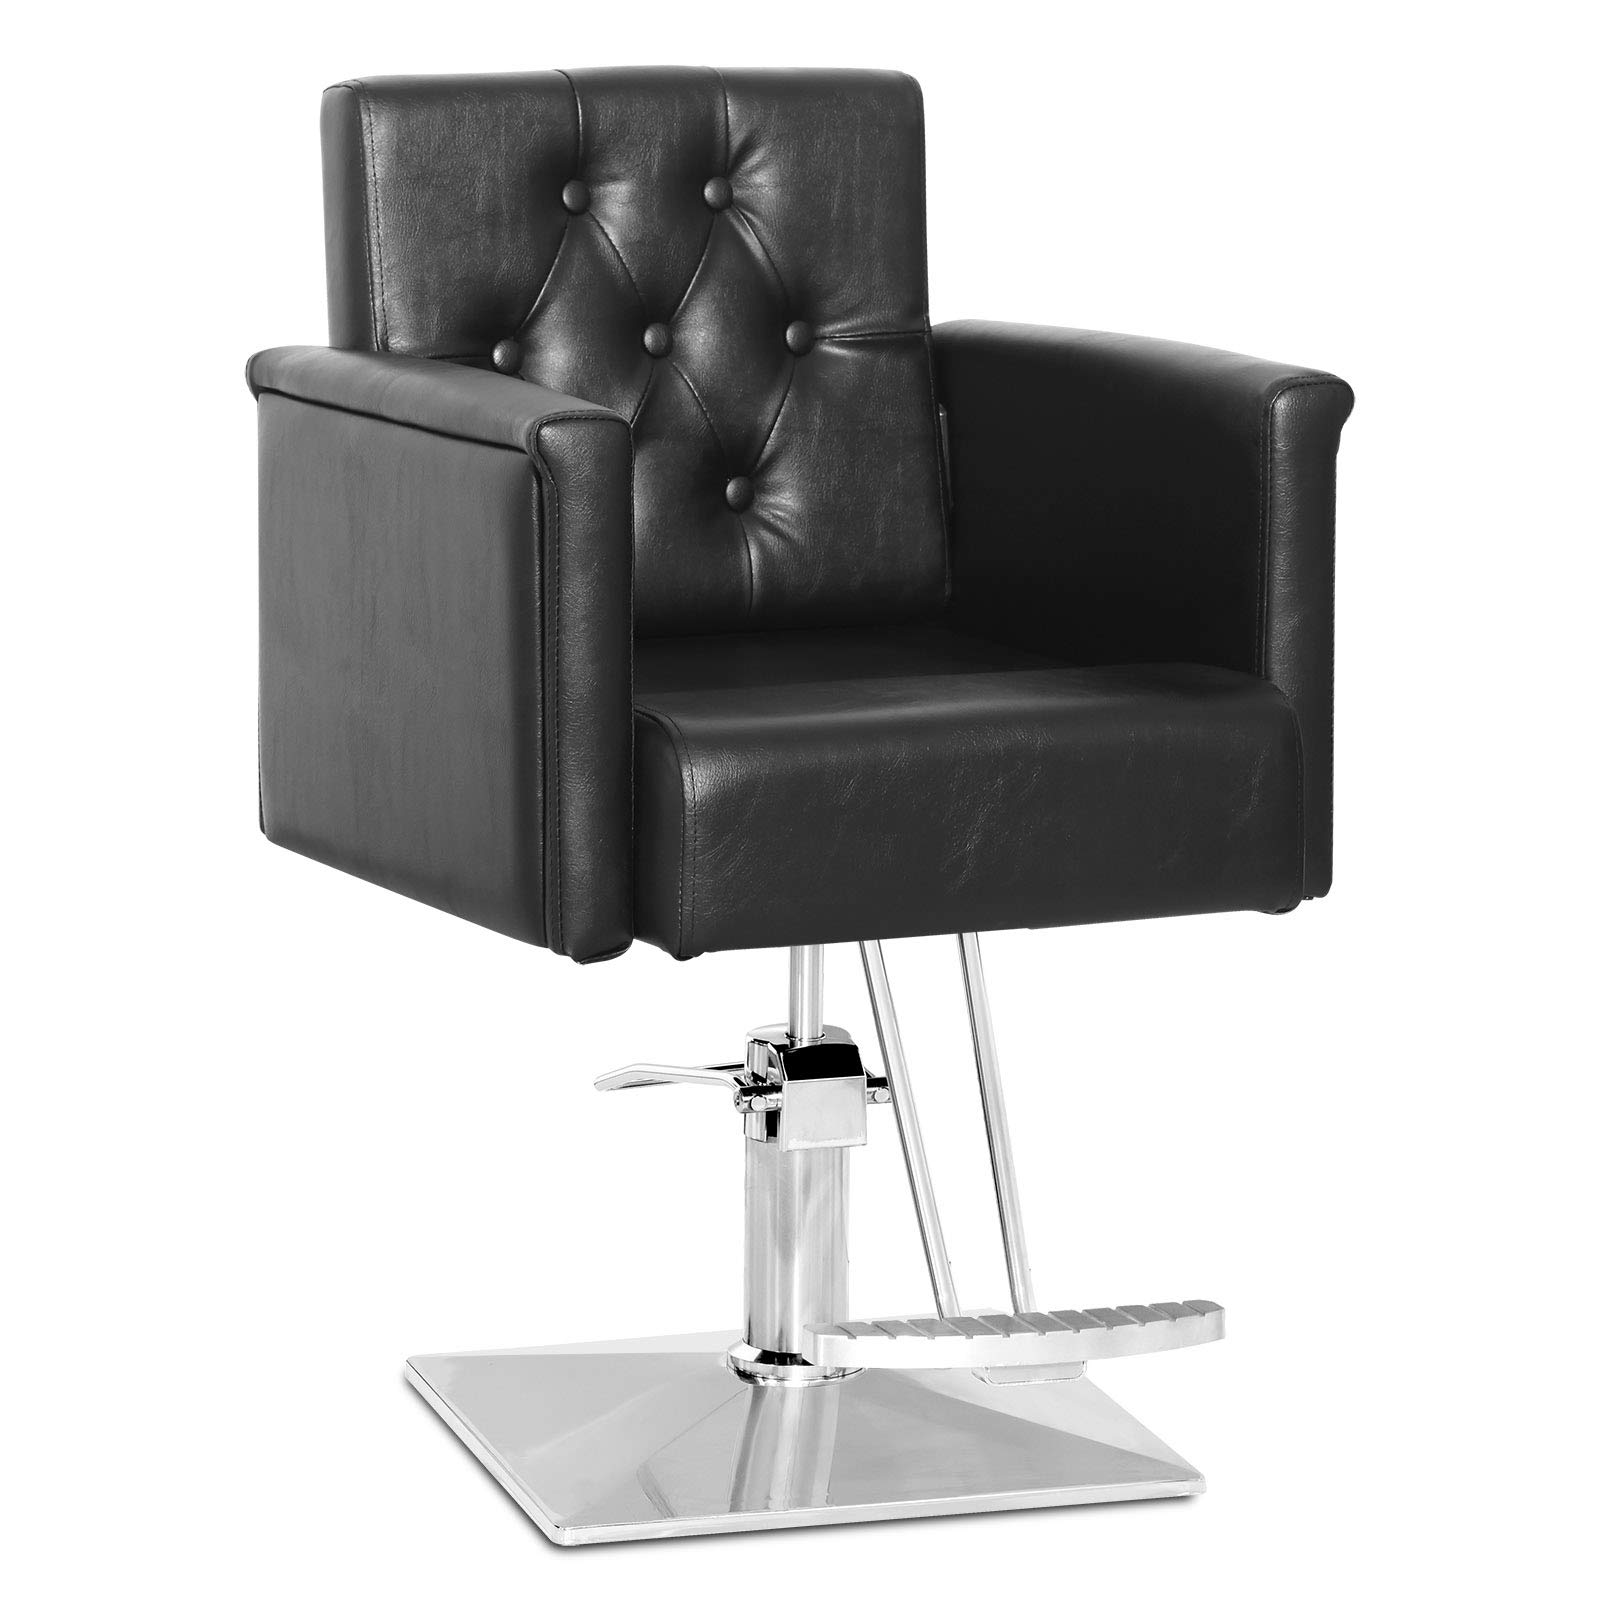 Paddie Salon Chairs for Hair Stylist, Hydraulic Barber Chair All Purpose Classic Styling Chair Beauty Spa Equipment, Black